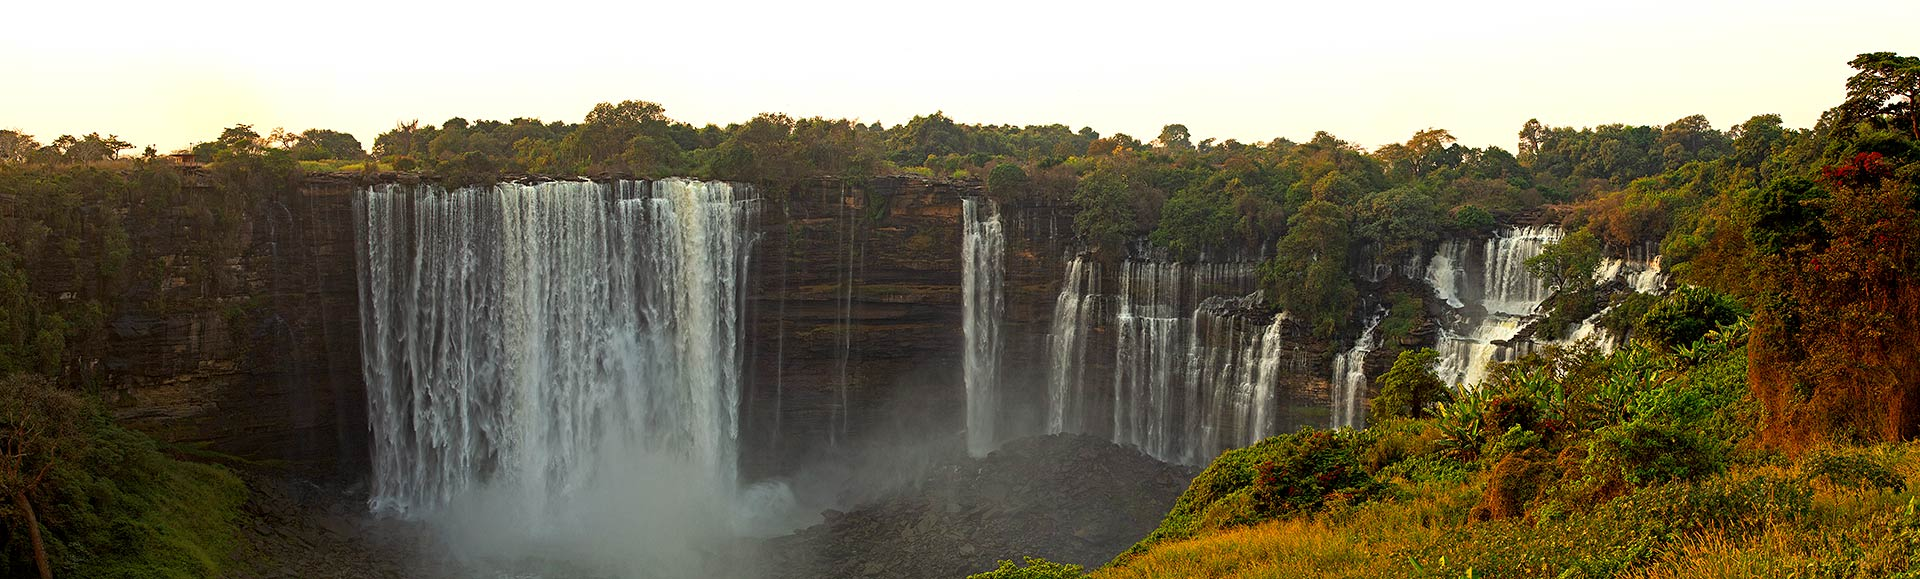 Kalandula Waterfall in Angola, Africa